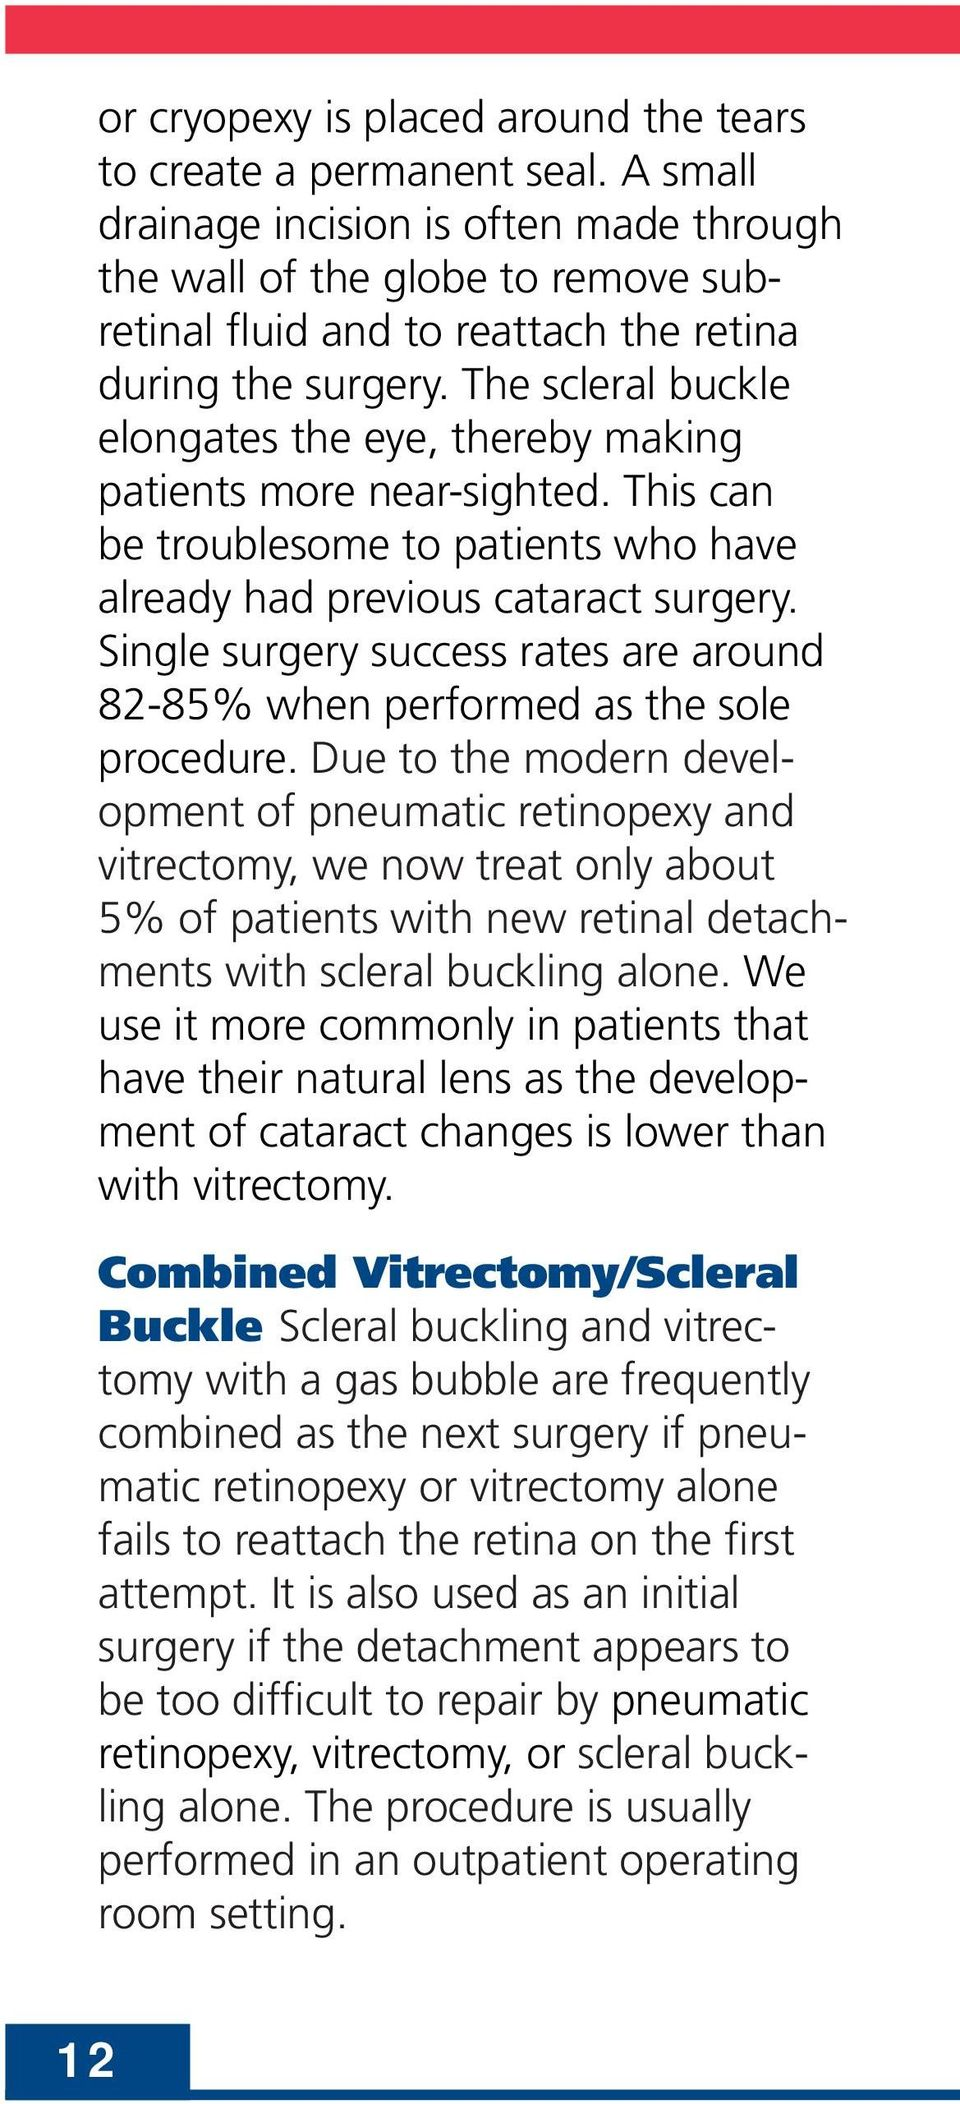 The scleral buckle elongates the eye, thereby making patients more near-sighted. This can be troublesome to patients who have already had previous cataract surgery.